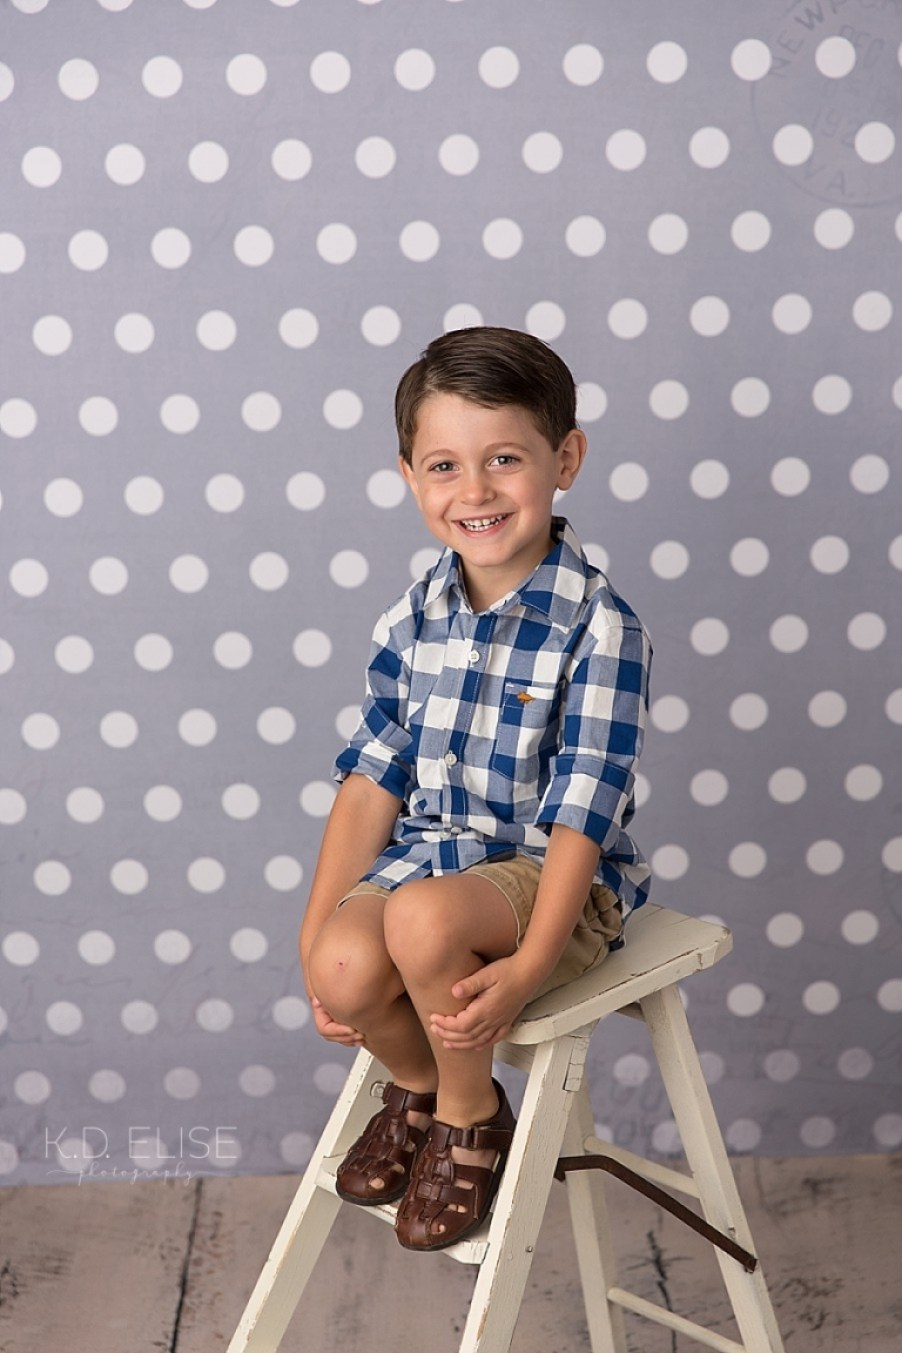 Four year old boy in a white and blue checked shirt sitting on a vintage white ladder.